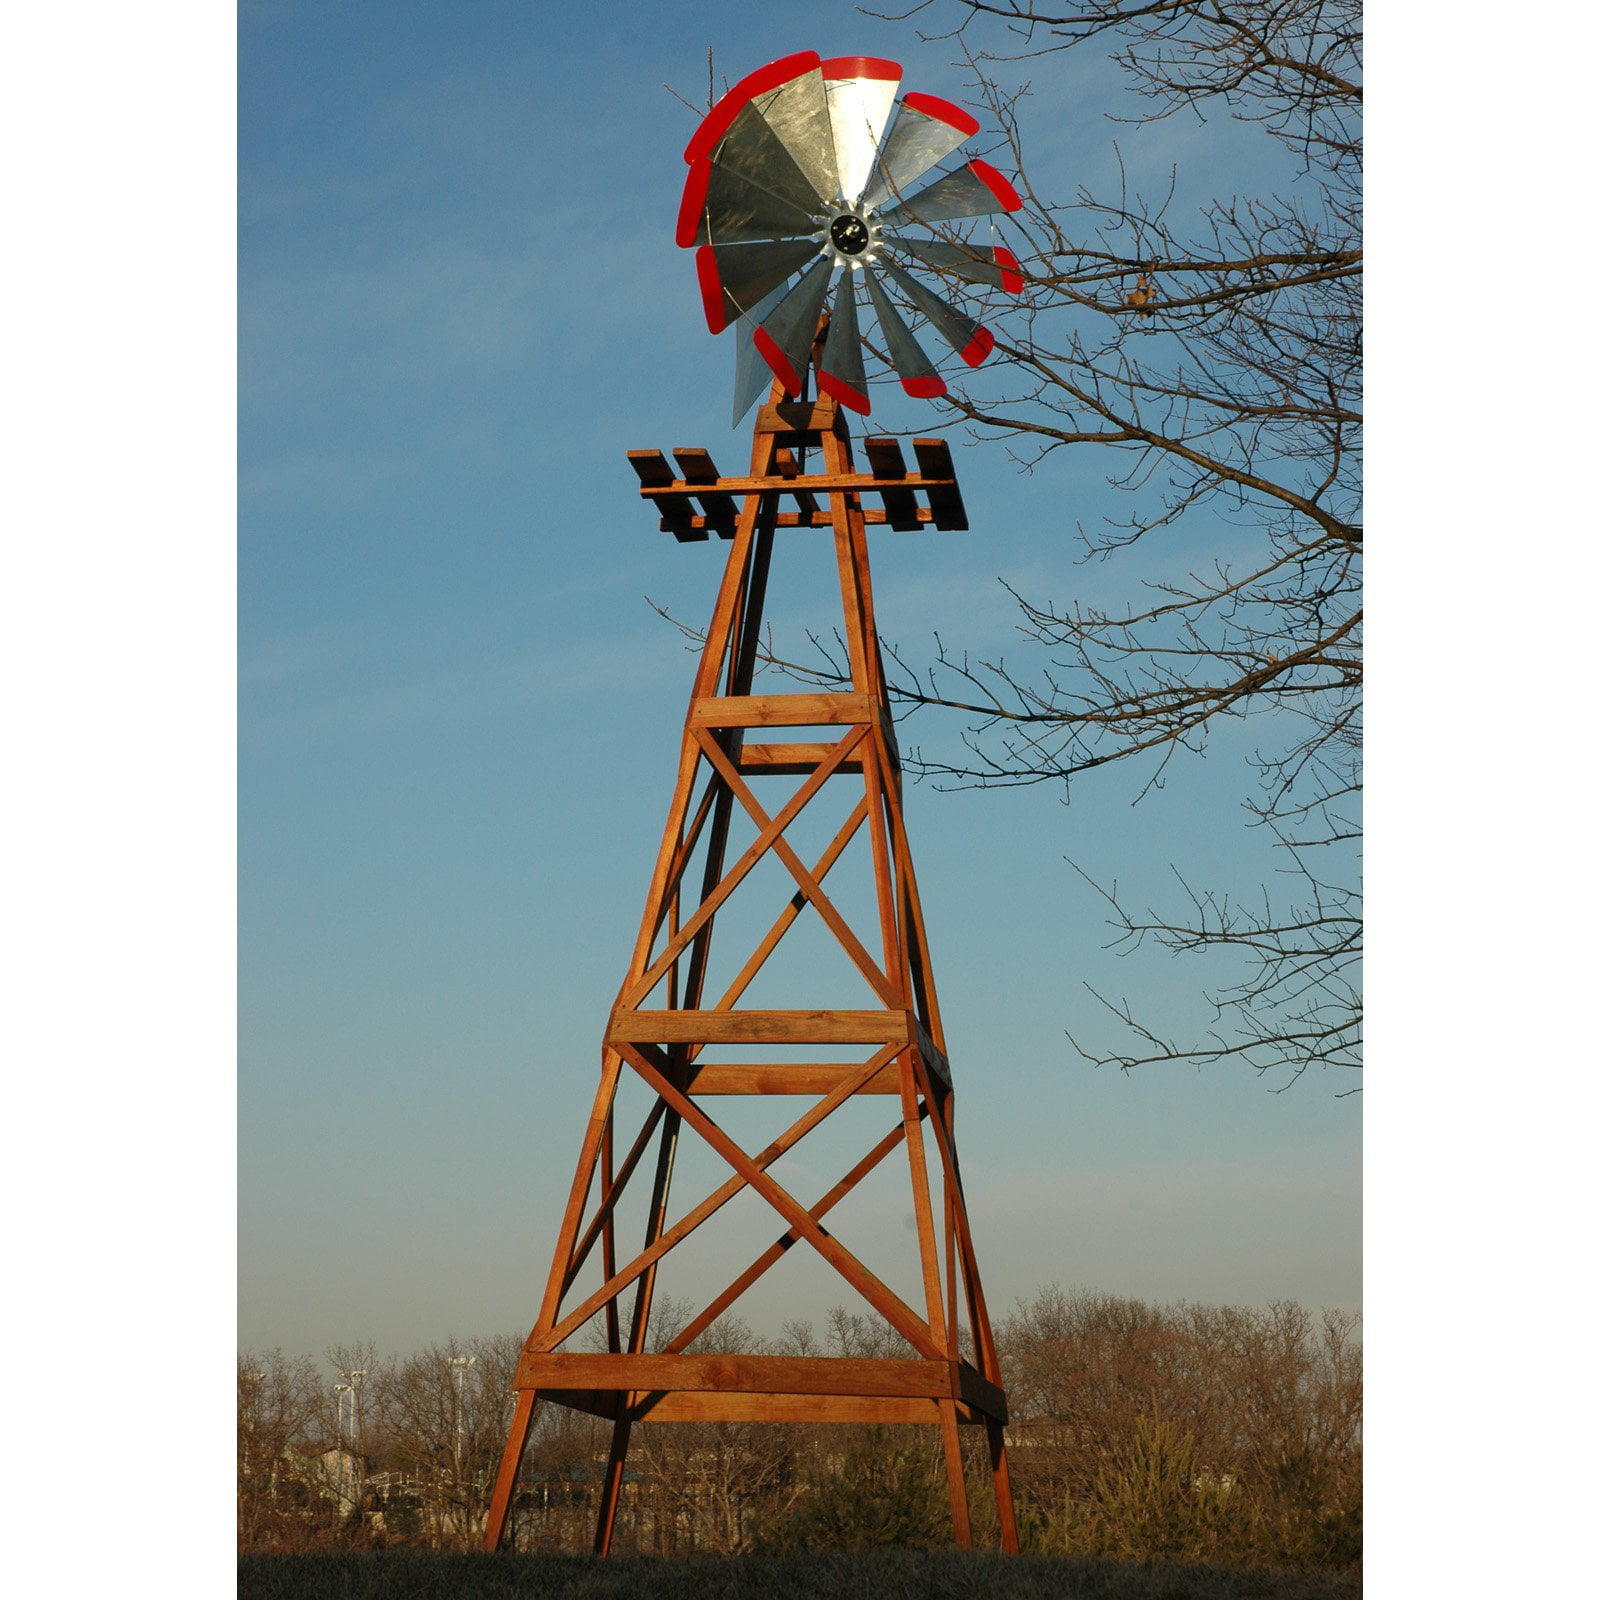 Decorative 13 ft. Wood Backyard Windmill with Red Tips by Windmills